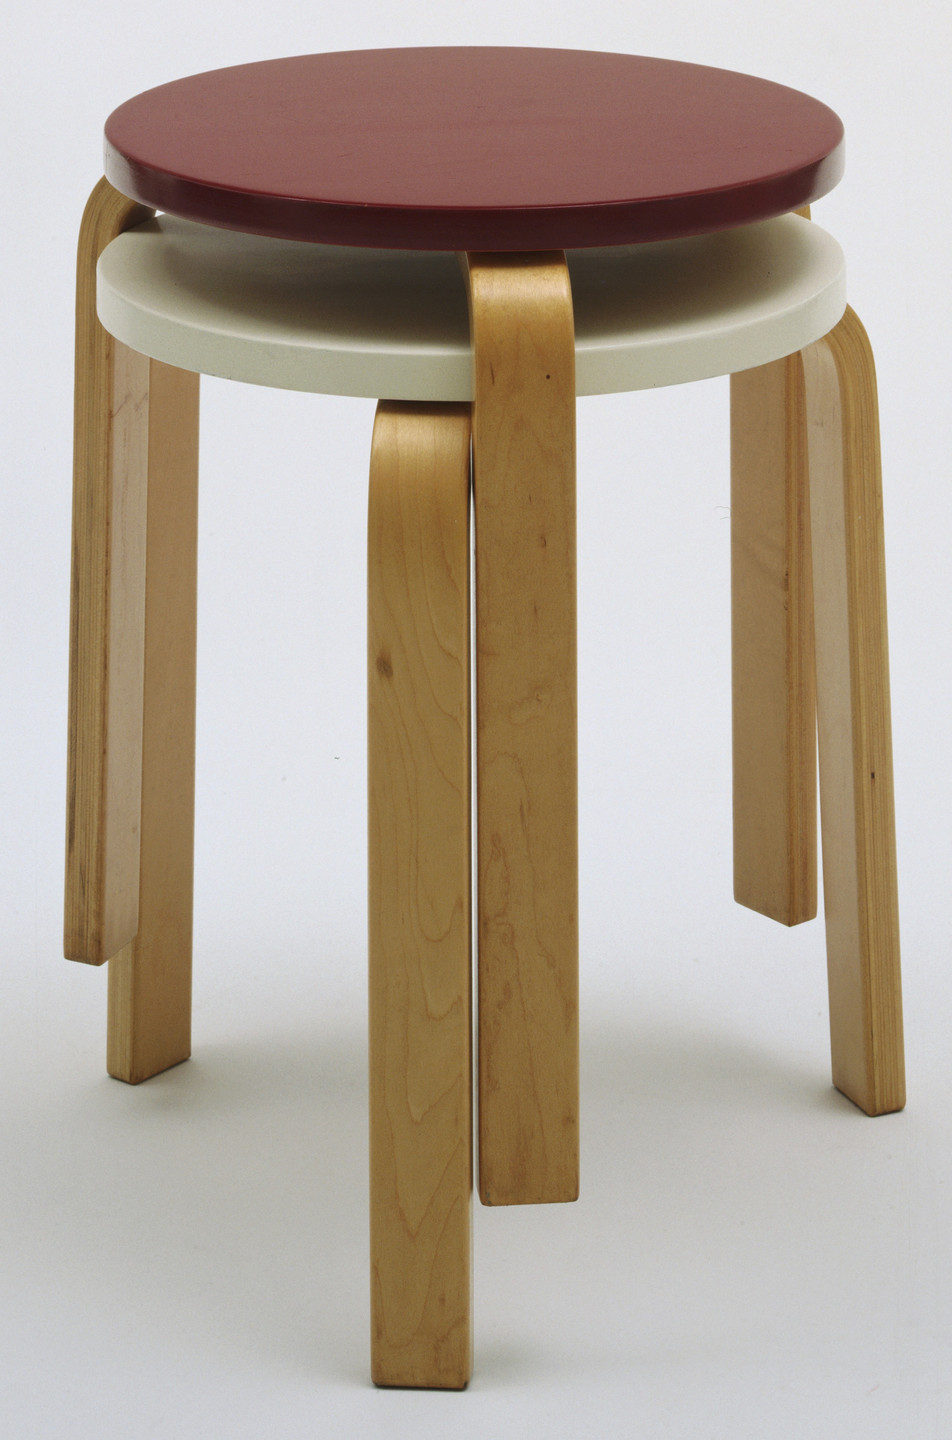 Alvar Aalto. Stacking Stools (model 60). 1932–1933